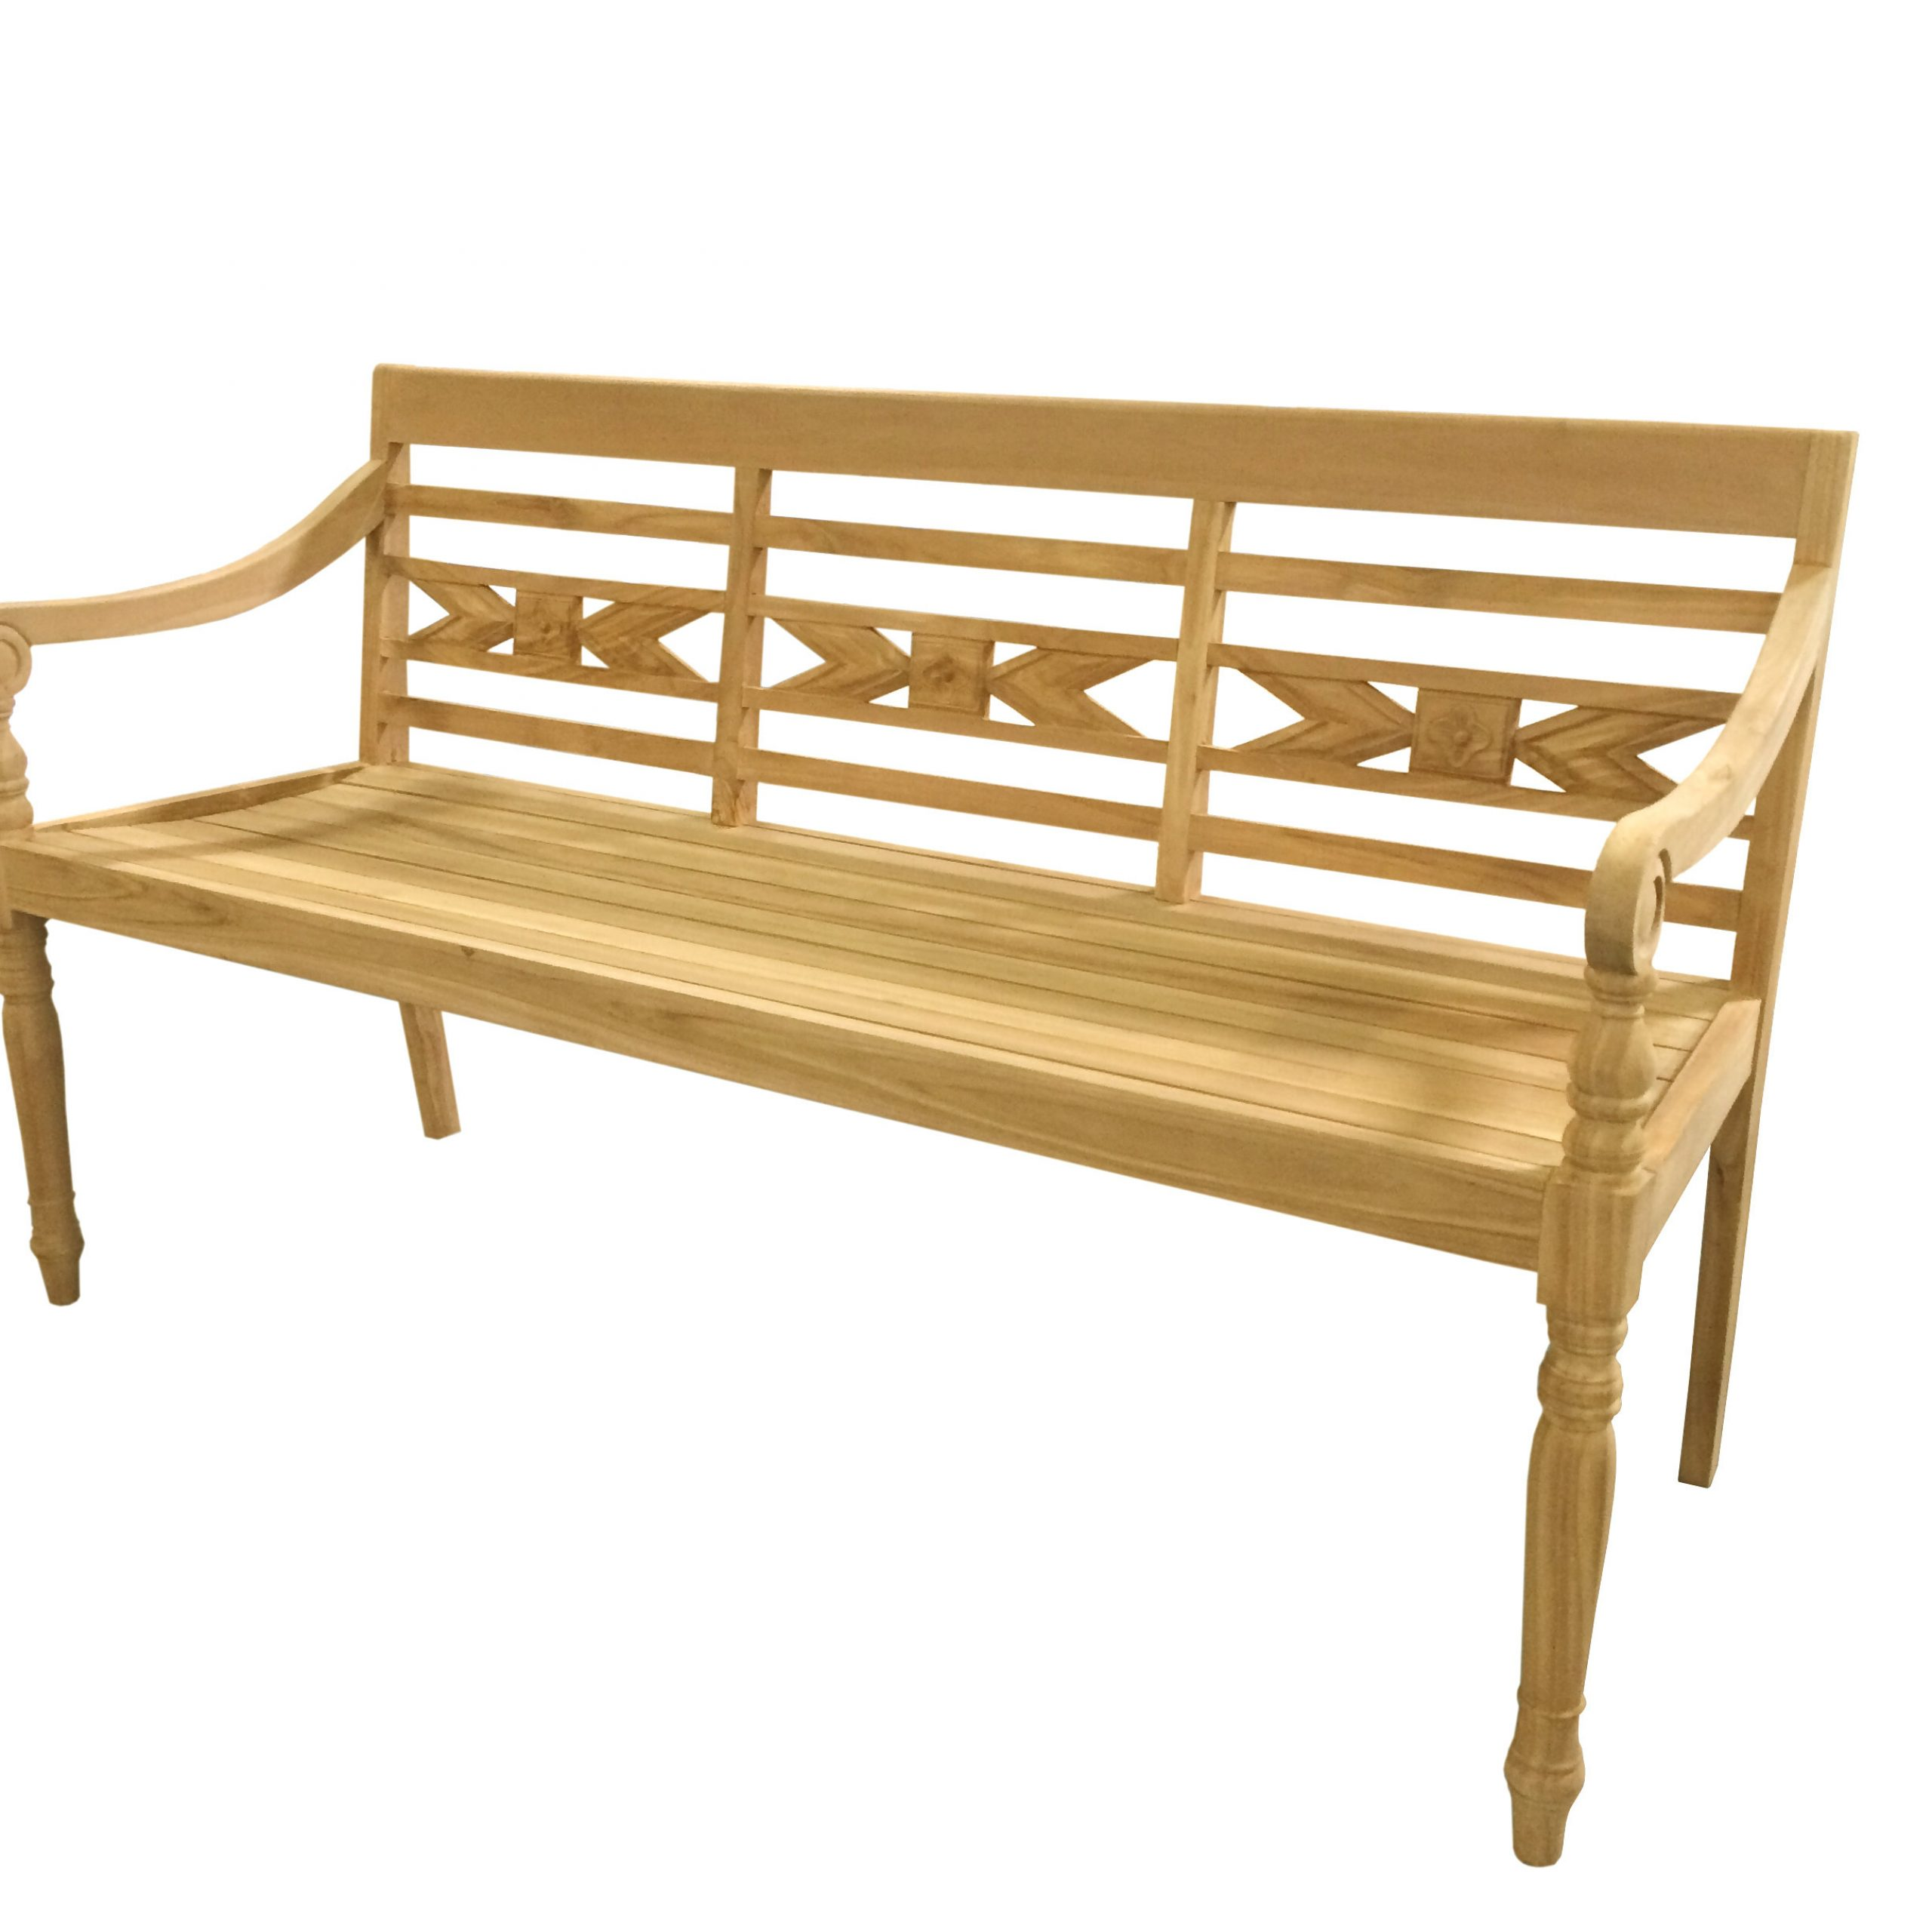 Abrielle Teak Garden Bench With Popular Wallie Teak Garden Benches (View 2 of 30)